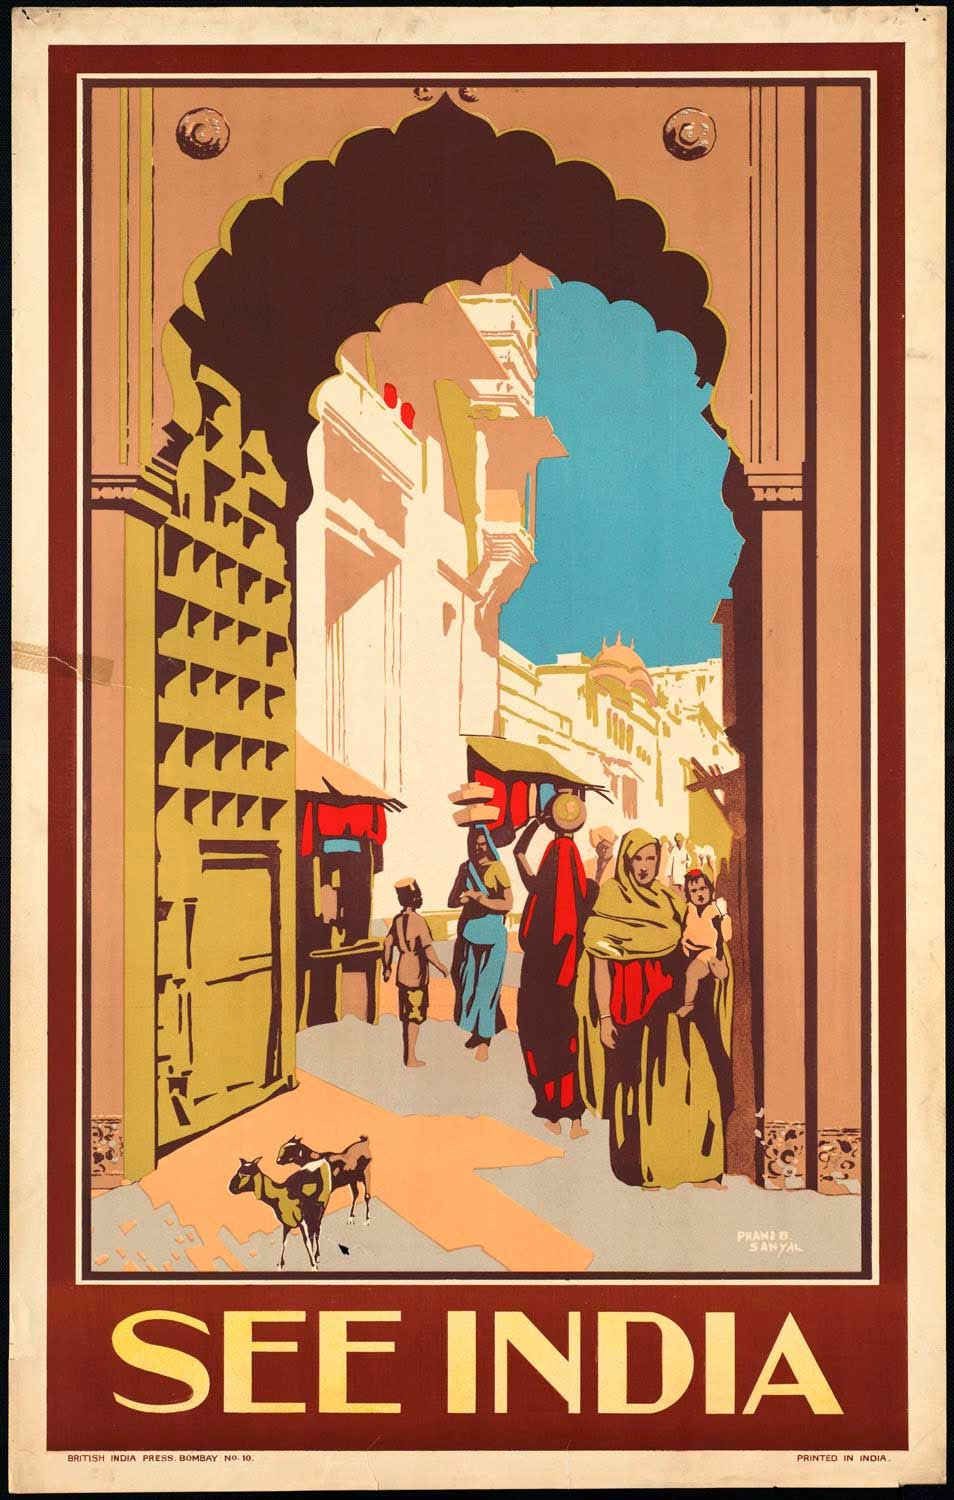 India Air-India Travel Poster Vintage Travel Poster Gap Year